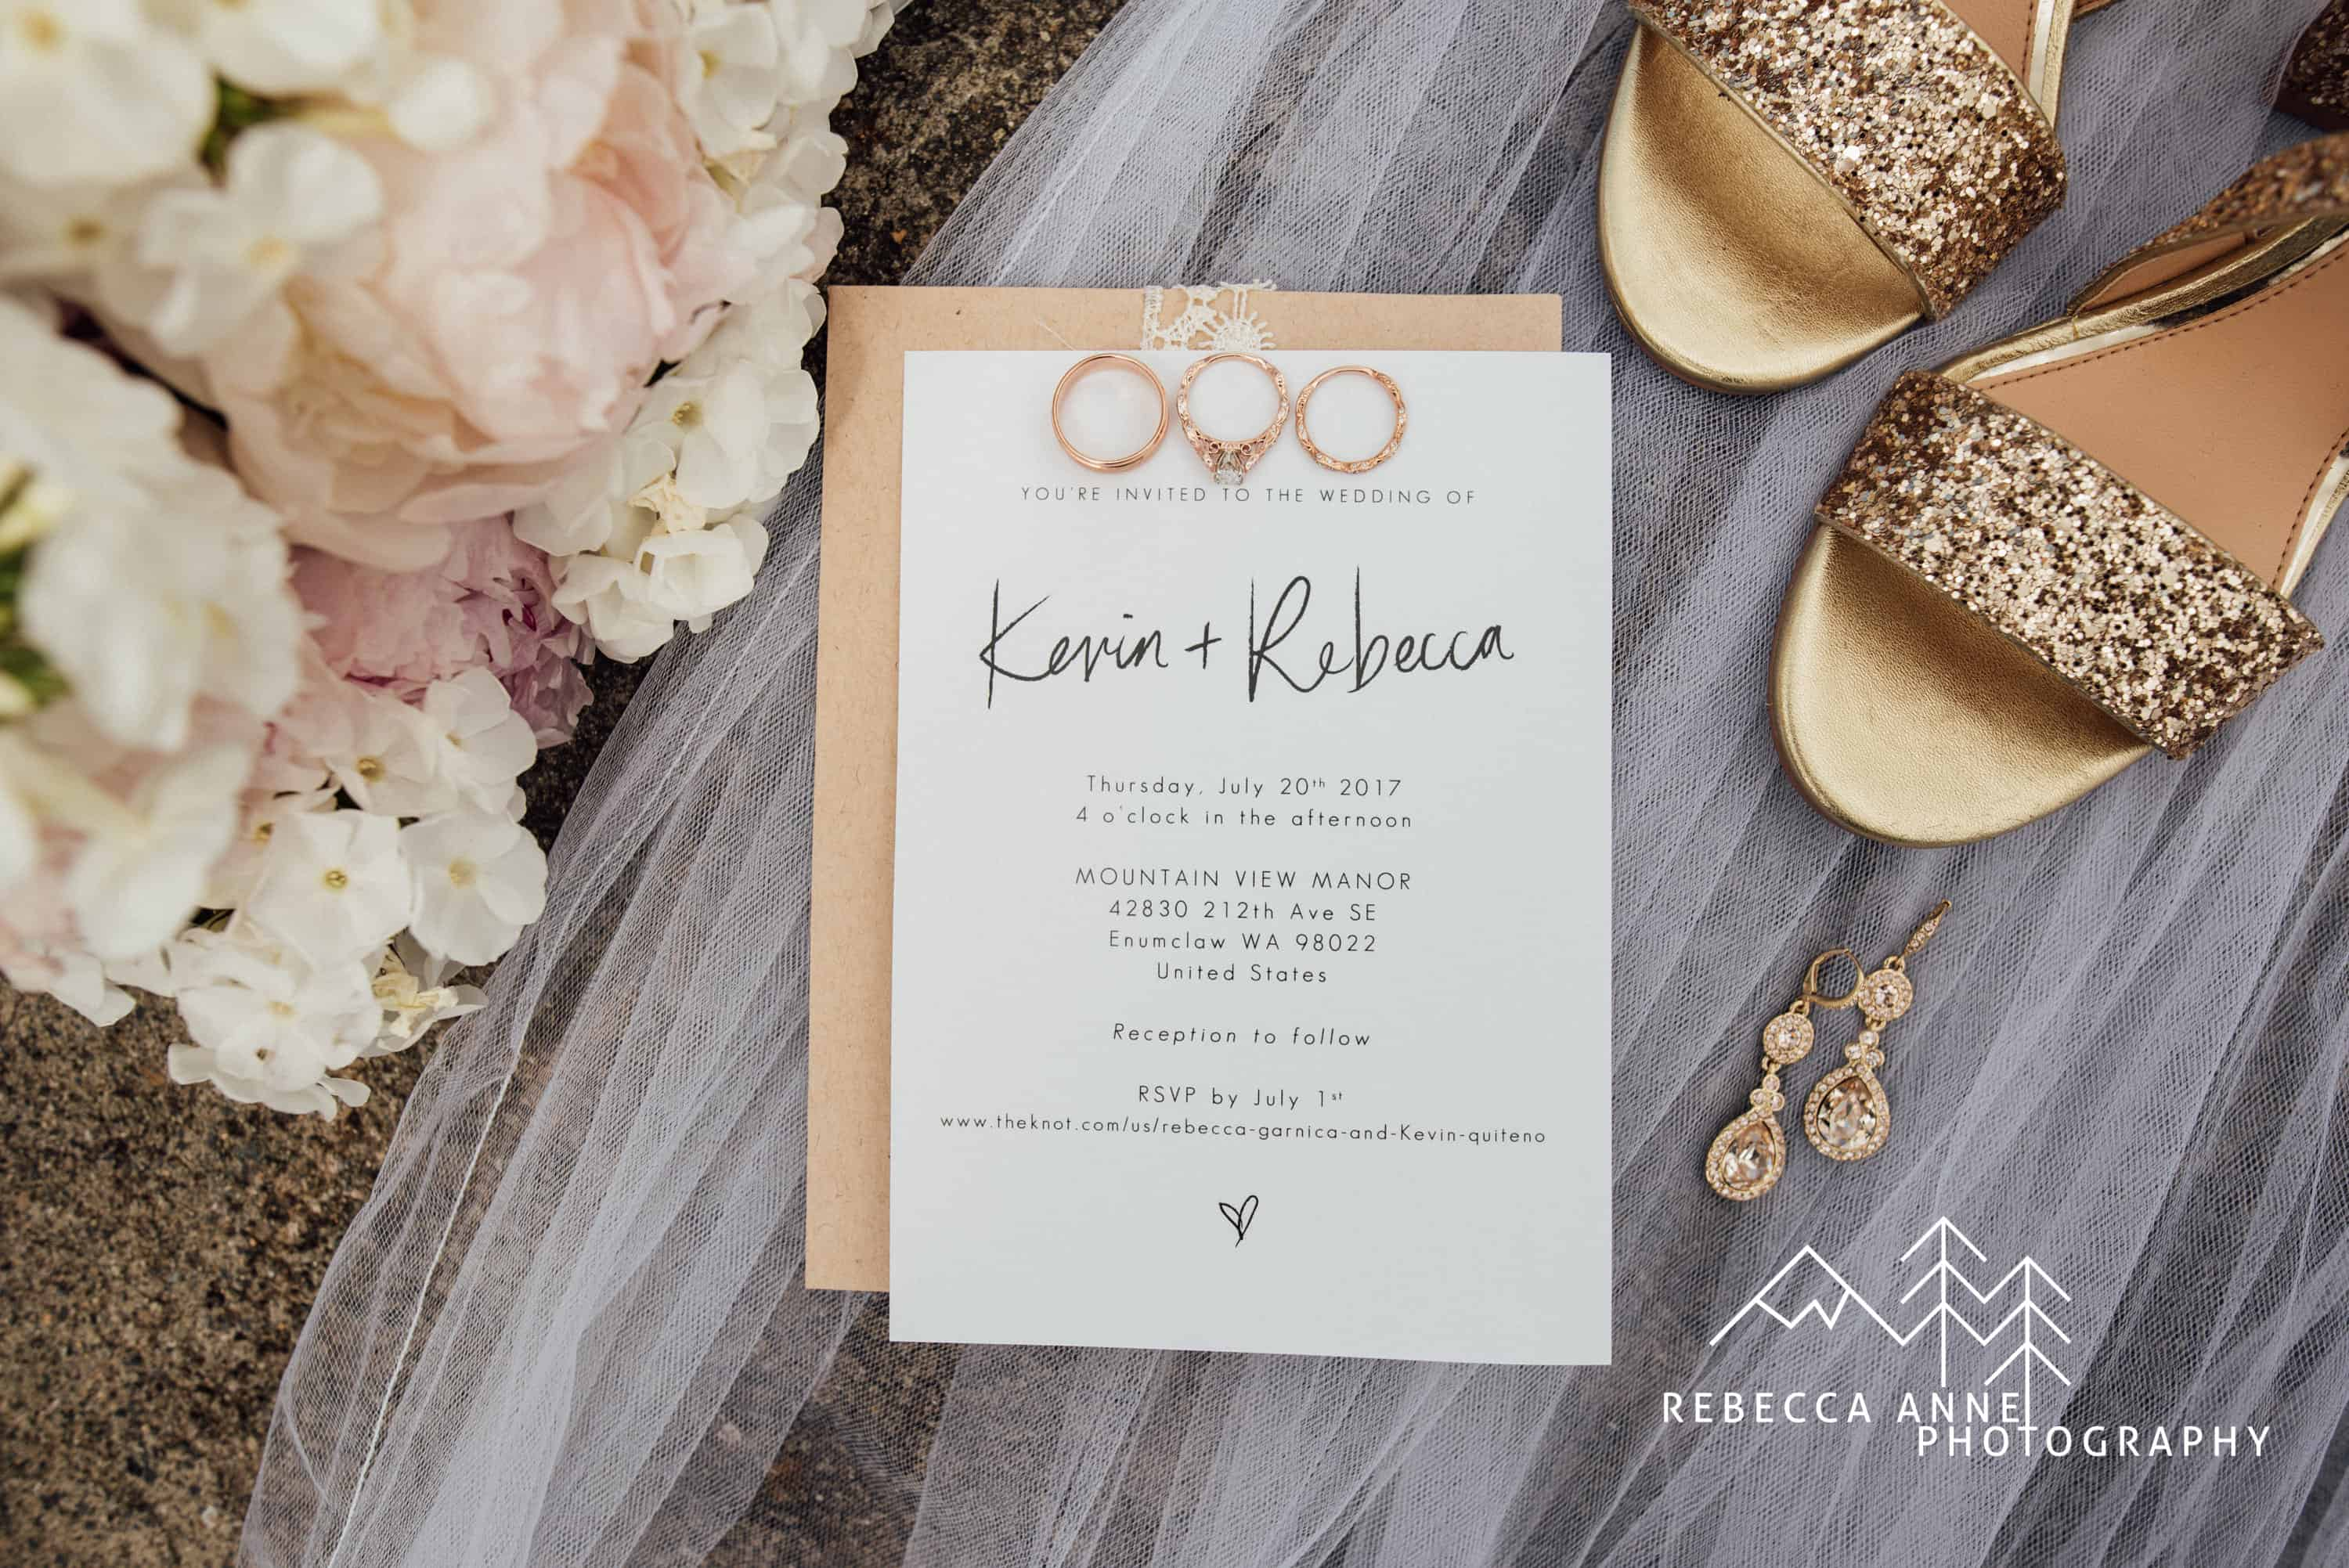 Photo Wedding Invitations For the Love of Stationery Rebecca Anne Photography